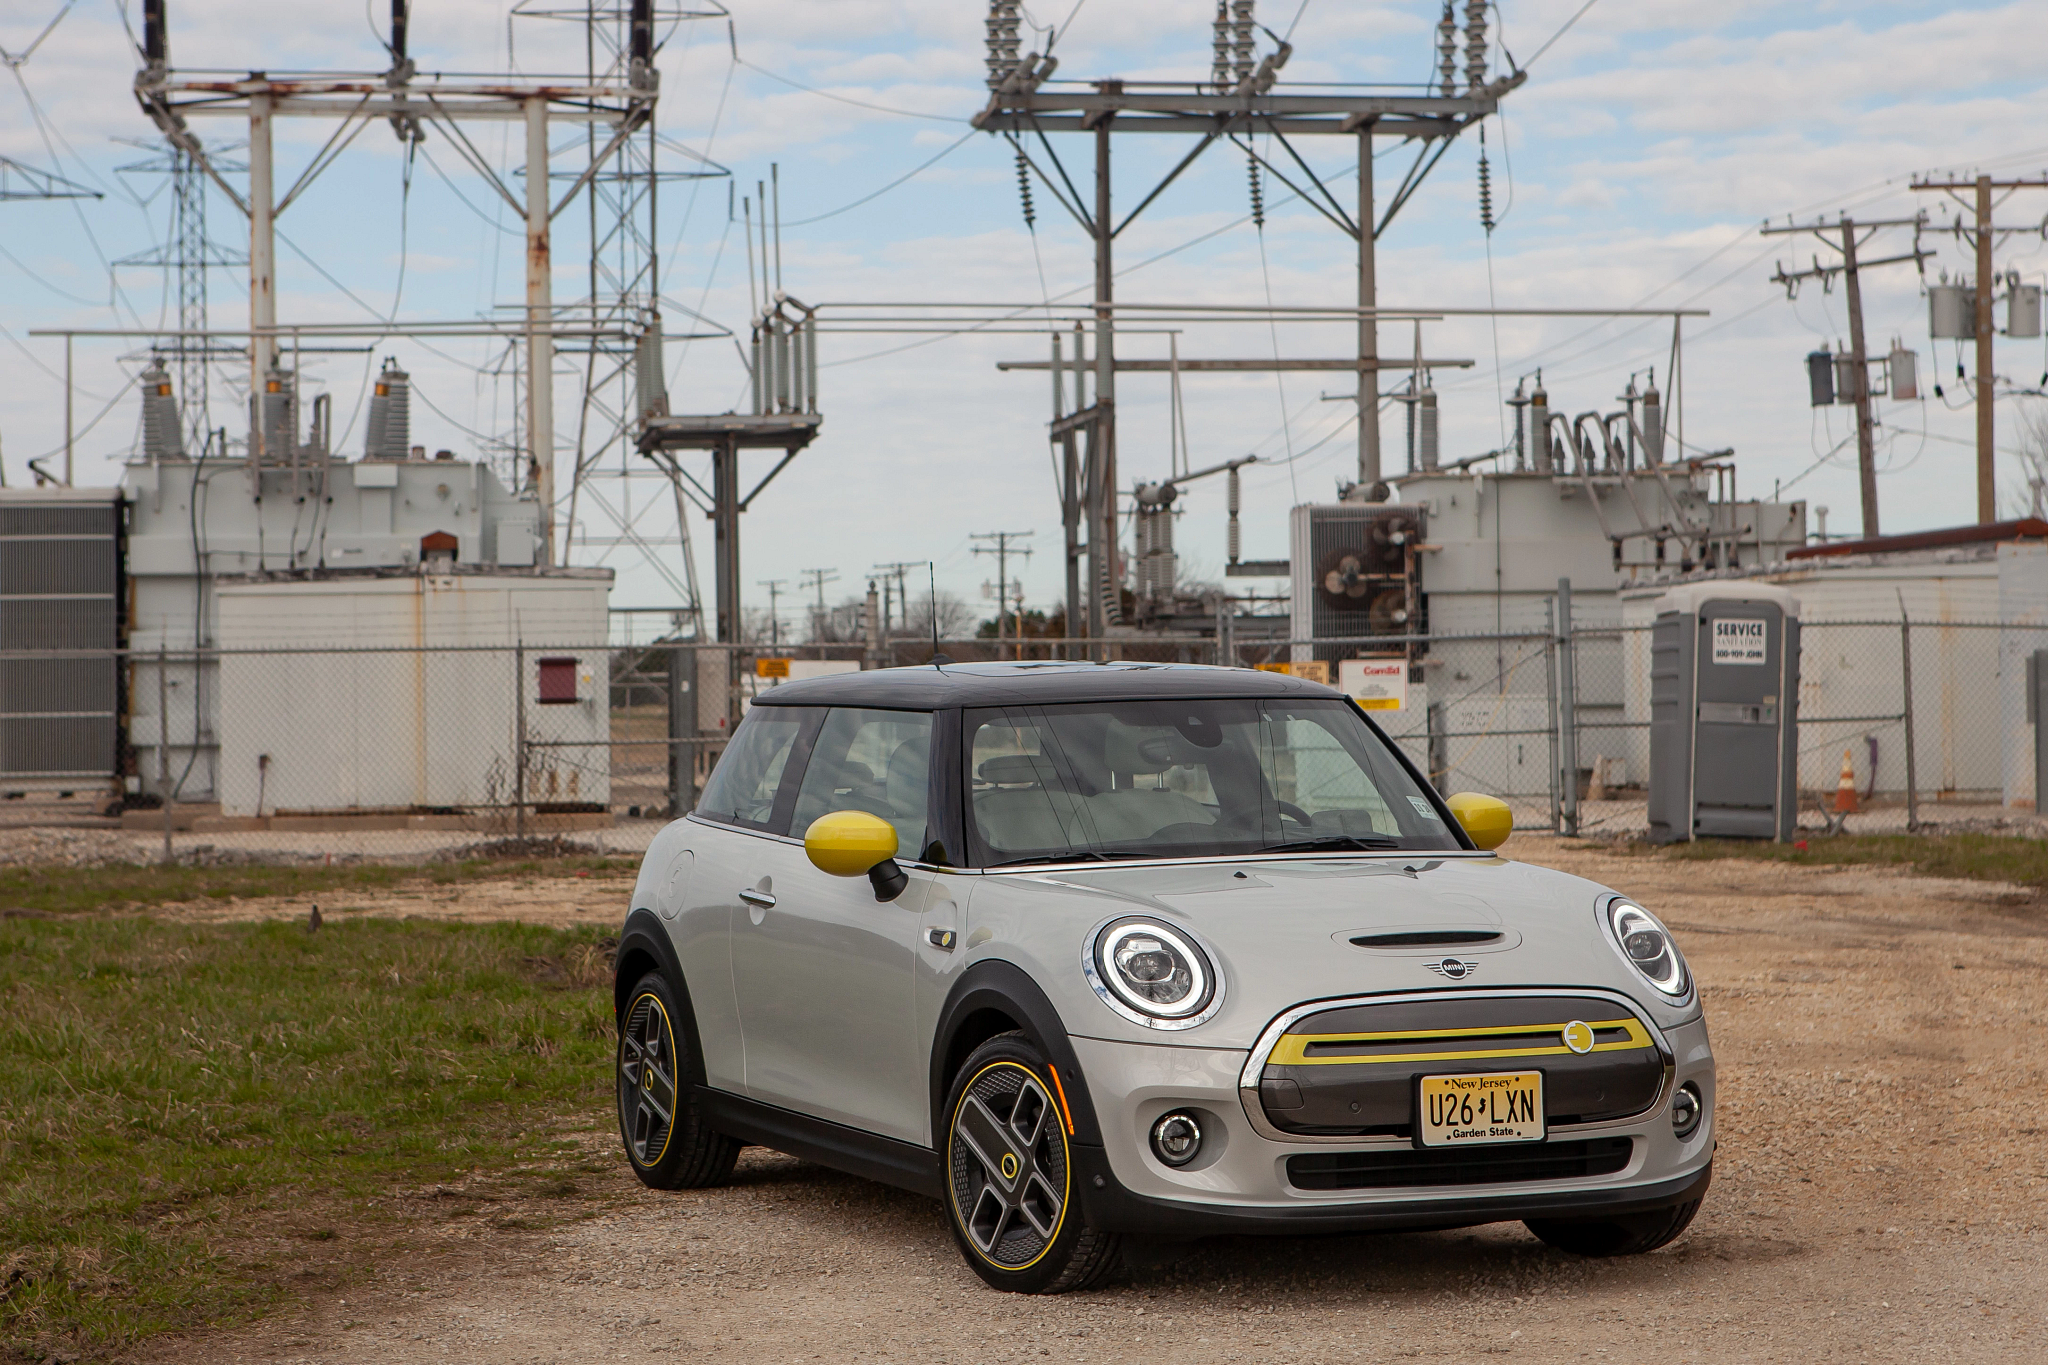 2020 Mini Cooper SE Hardtop Review: Electric, Fun and Priced for Its Modest Range